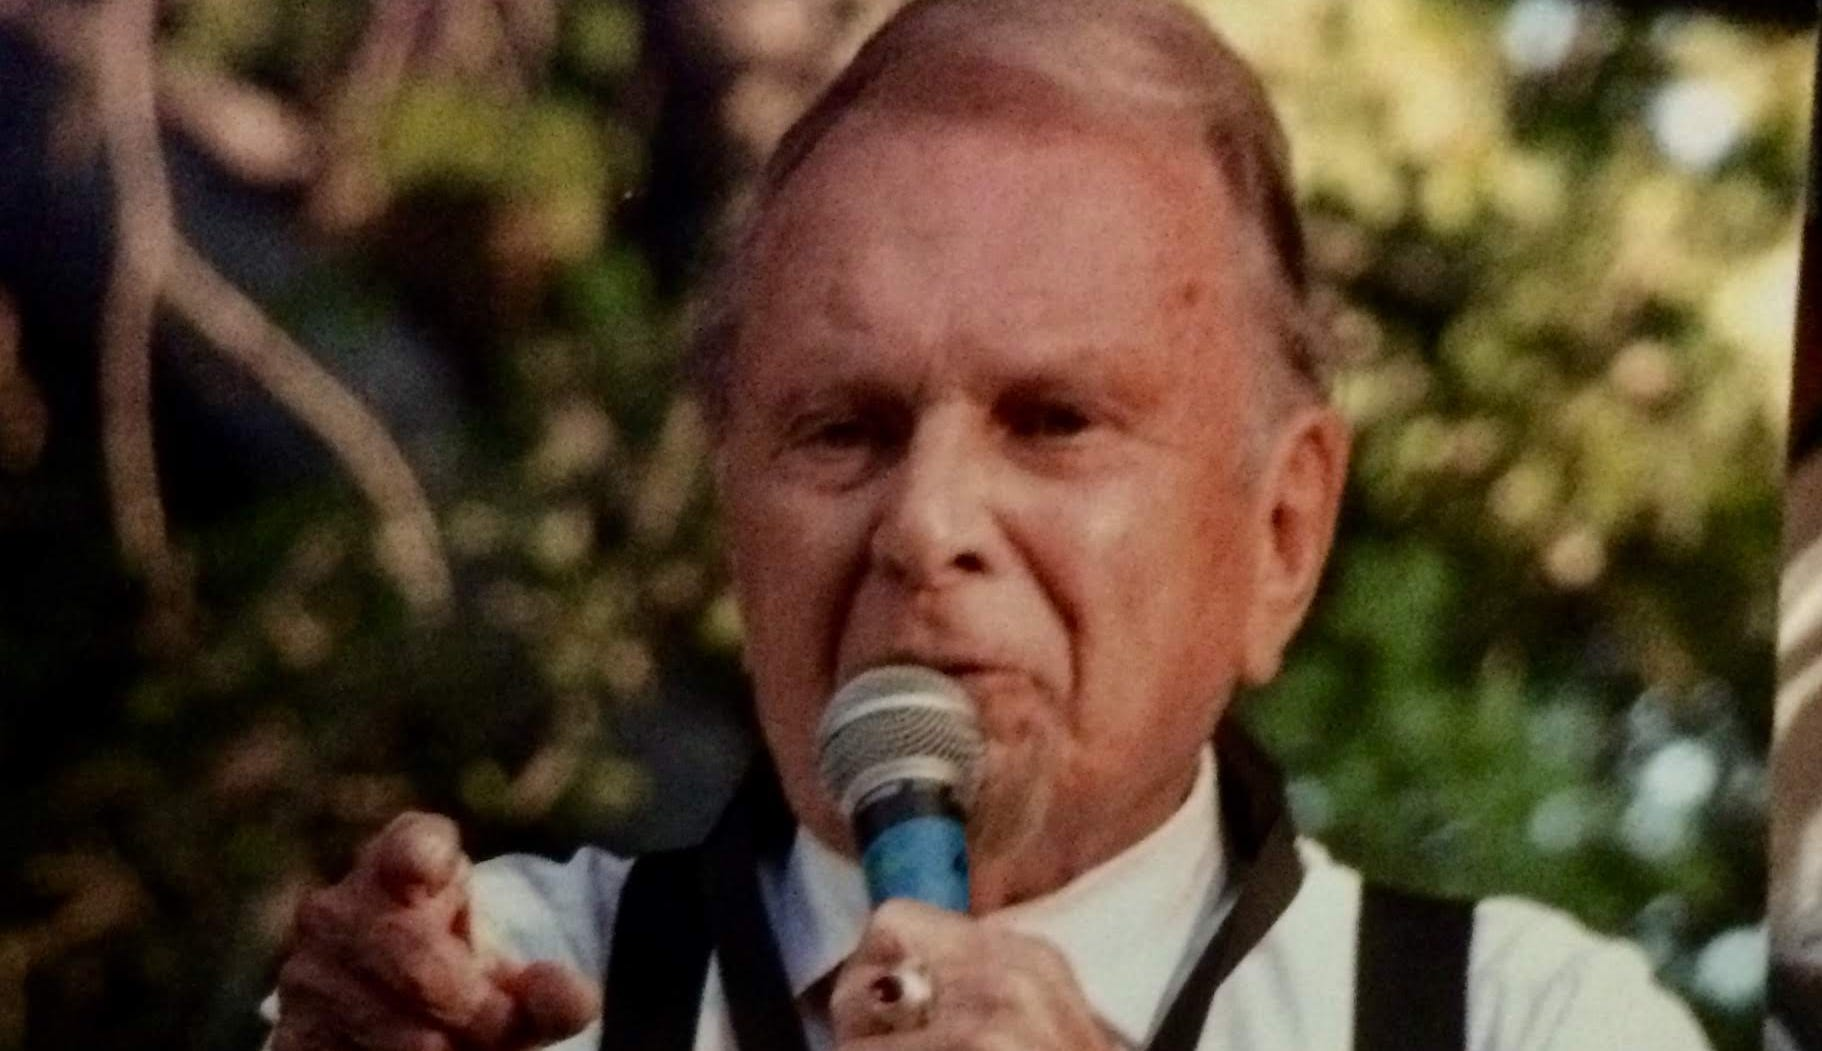 Dick Dodd, a 90-year-old Ventura veterans home resident, volunteers at museums, performs at Alzheimer's units, plays the sax at local concerts and tells stories.